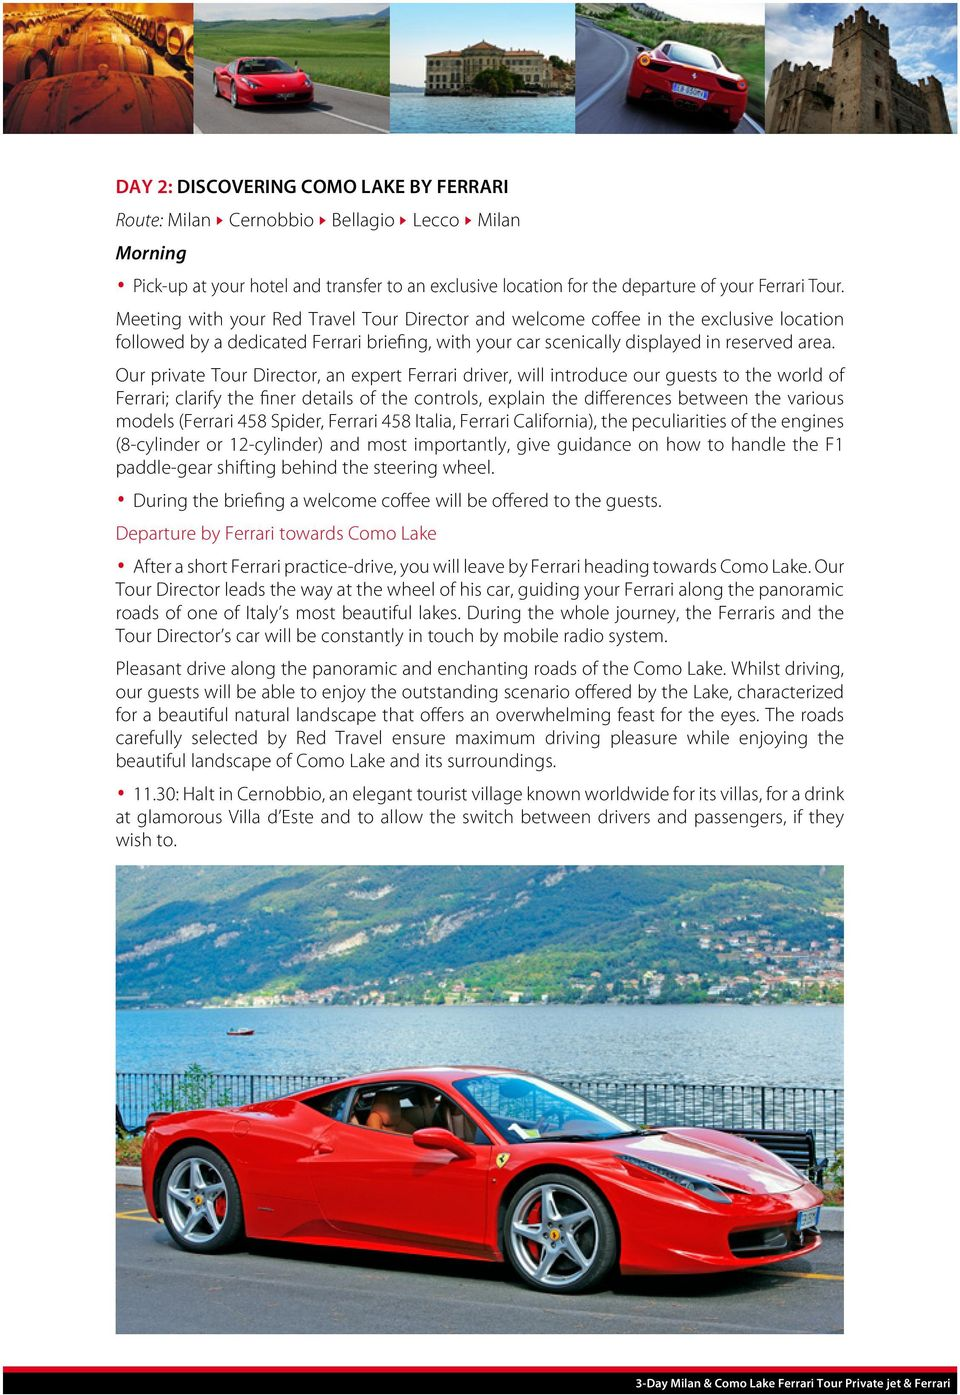 Our private Tour Director, an expert Ferrari driver, will introduce our guests to the world of Ferrari; clarify the finer details of the controls, explain the differences between the various models